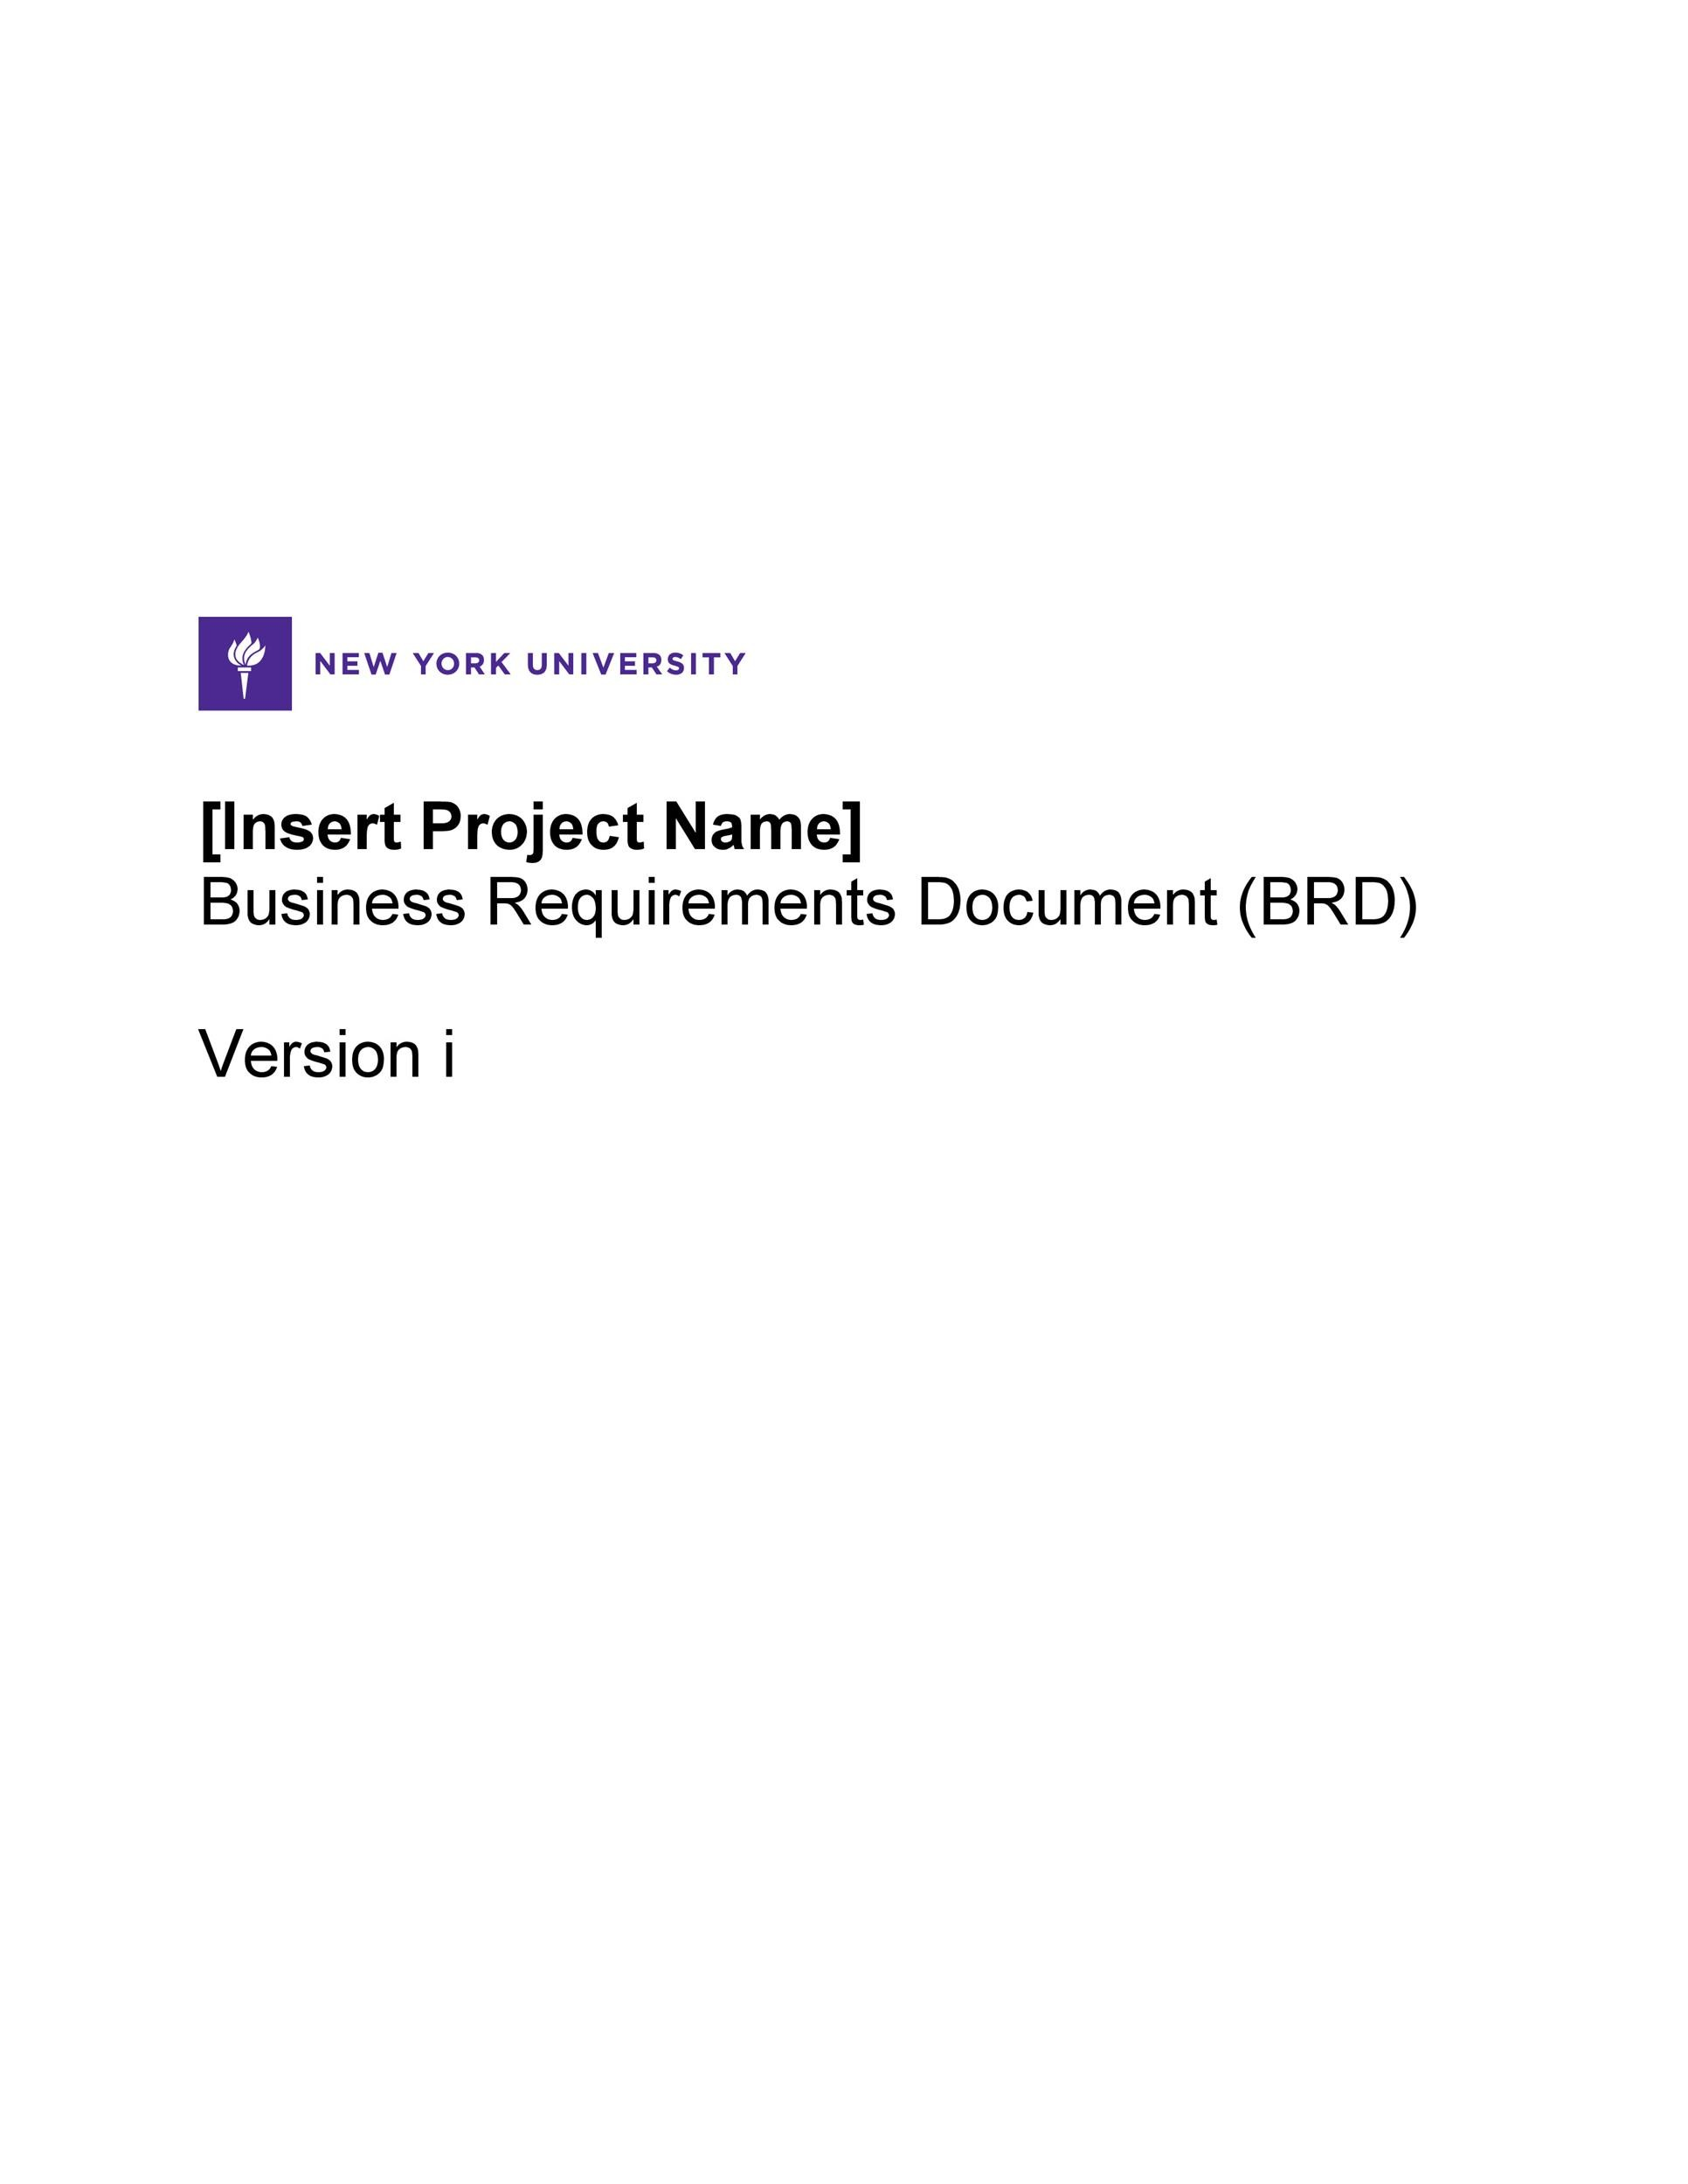 Free business requirements document template 23